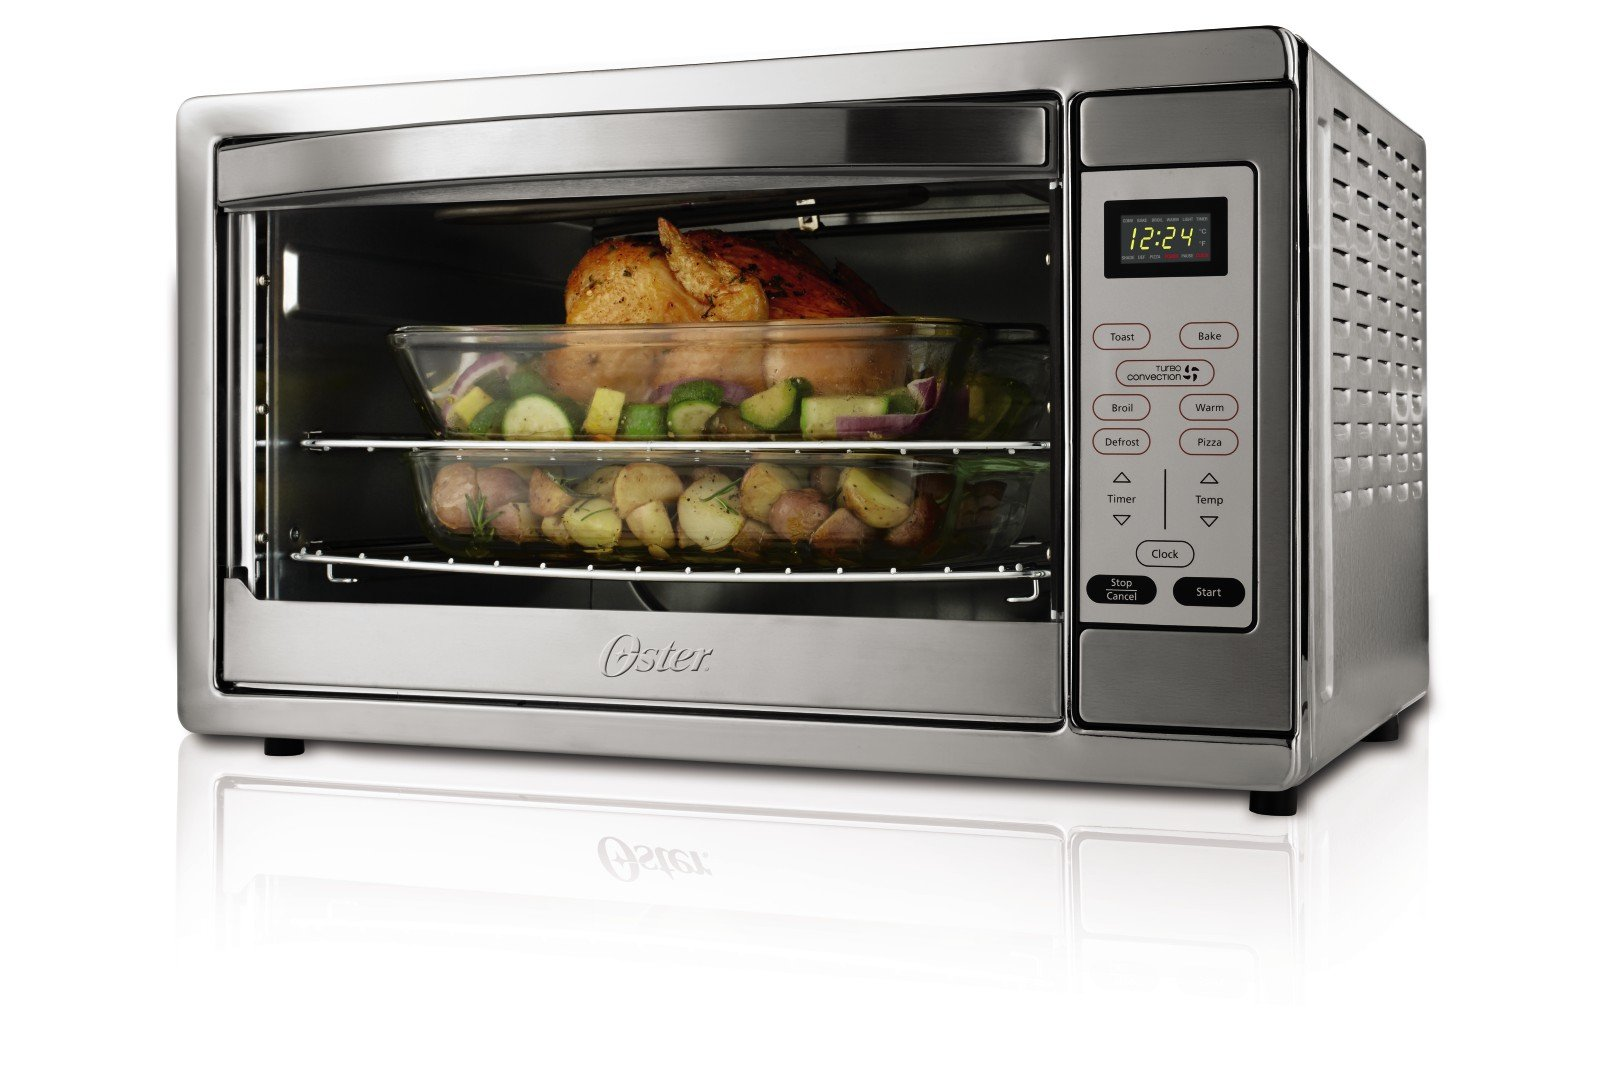 Oster Extra Large Digital Countertop Convection Oven, Stainless Steel (TSSTTVDGXL-SHP)